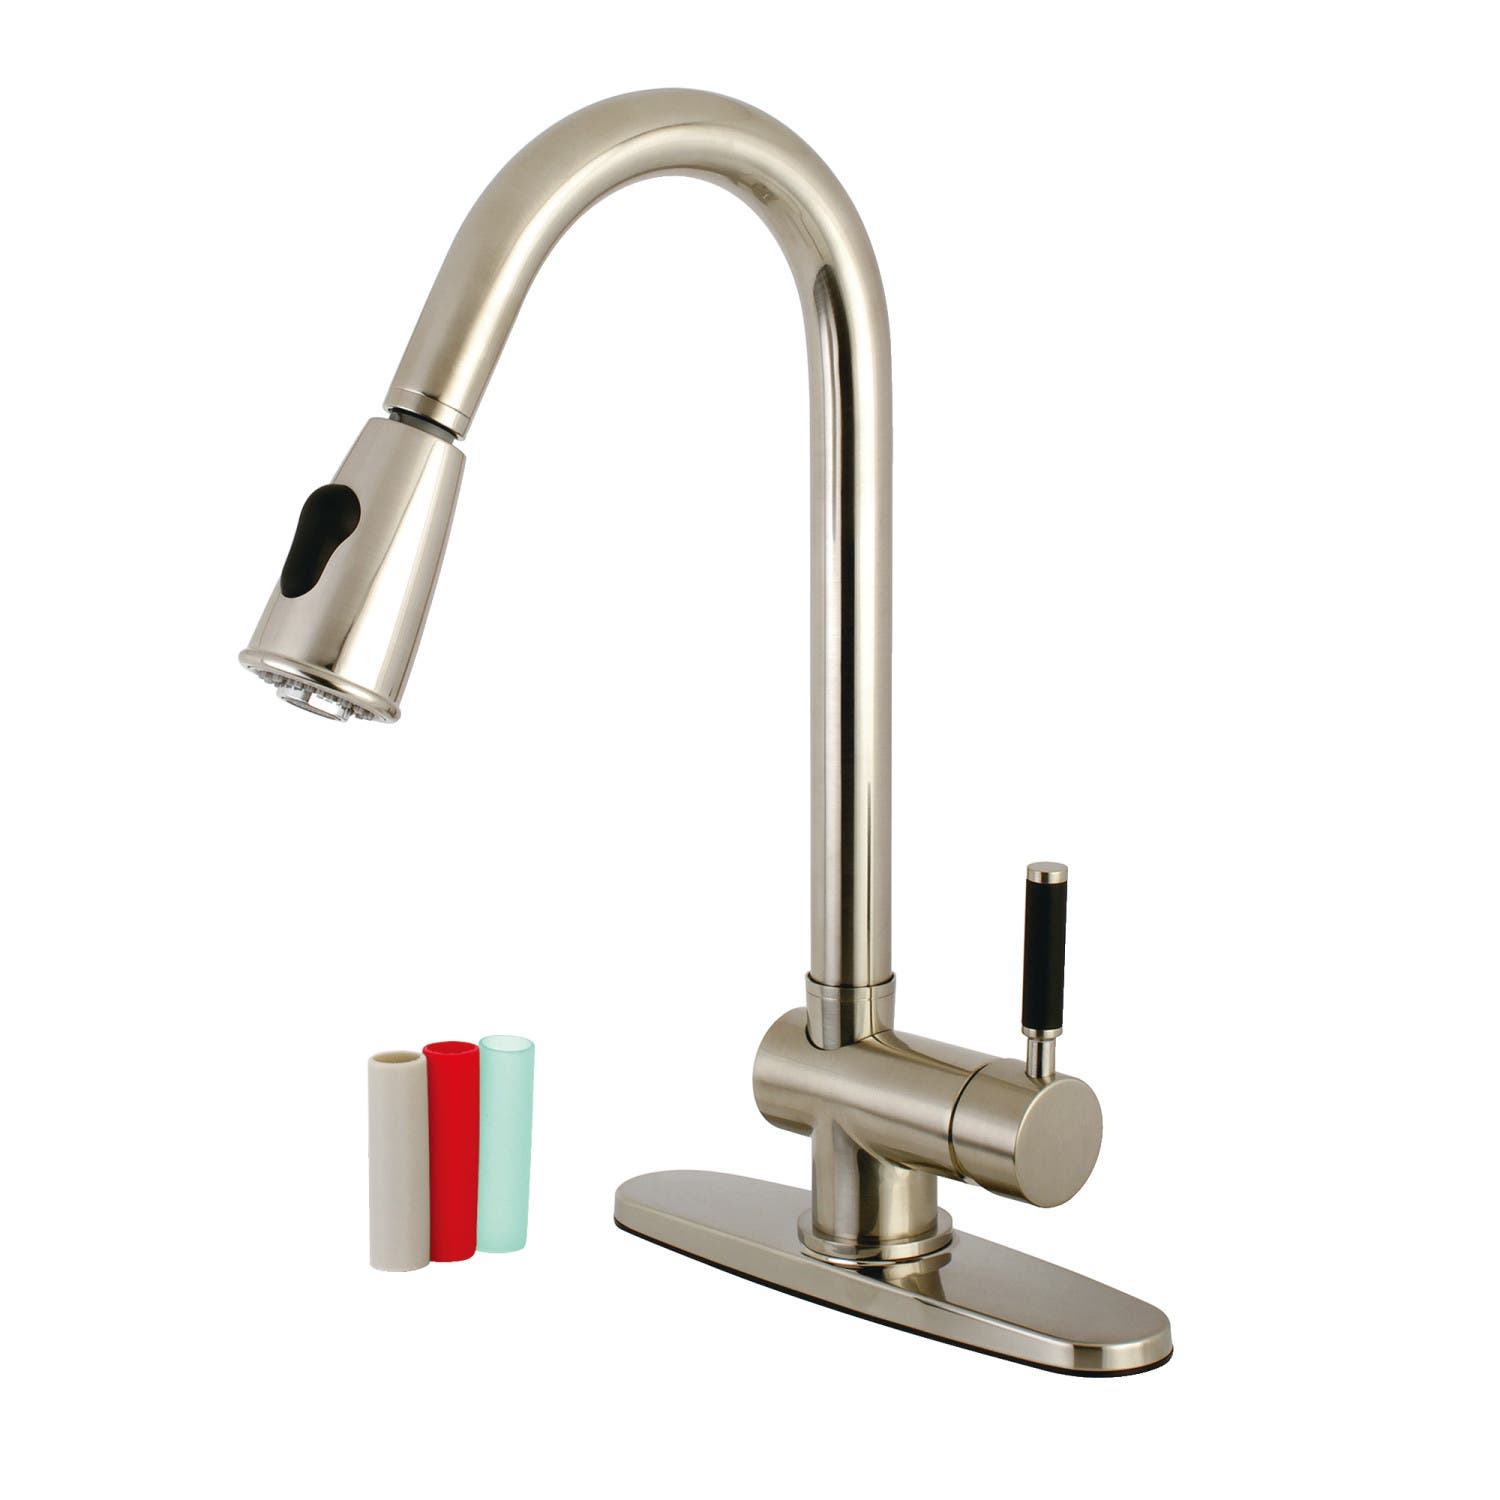 Kingston Brass Gourmetier GS8898DKL Kaiser 8-Inch Center Single Lever Handle Kitchen Faucet with Pull-down Sprayer Brushed Nickel